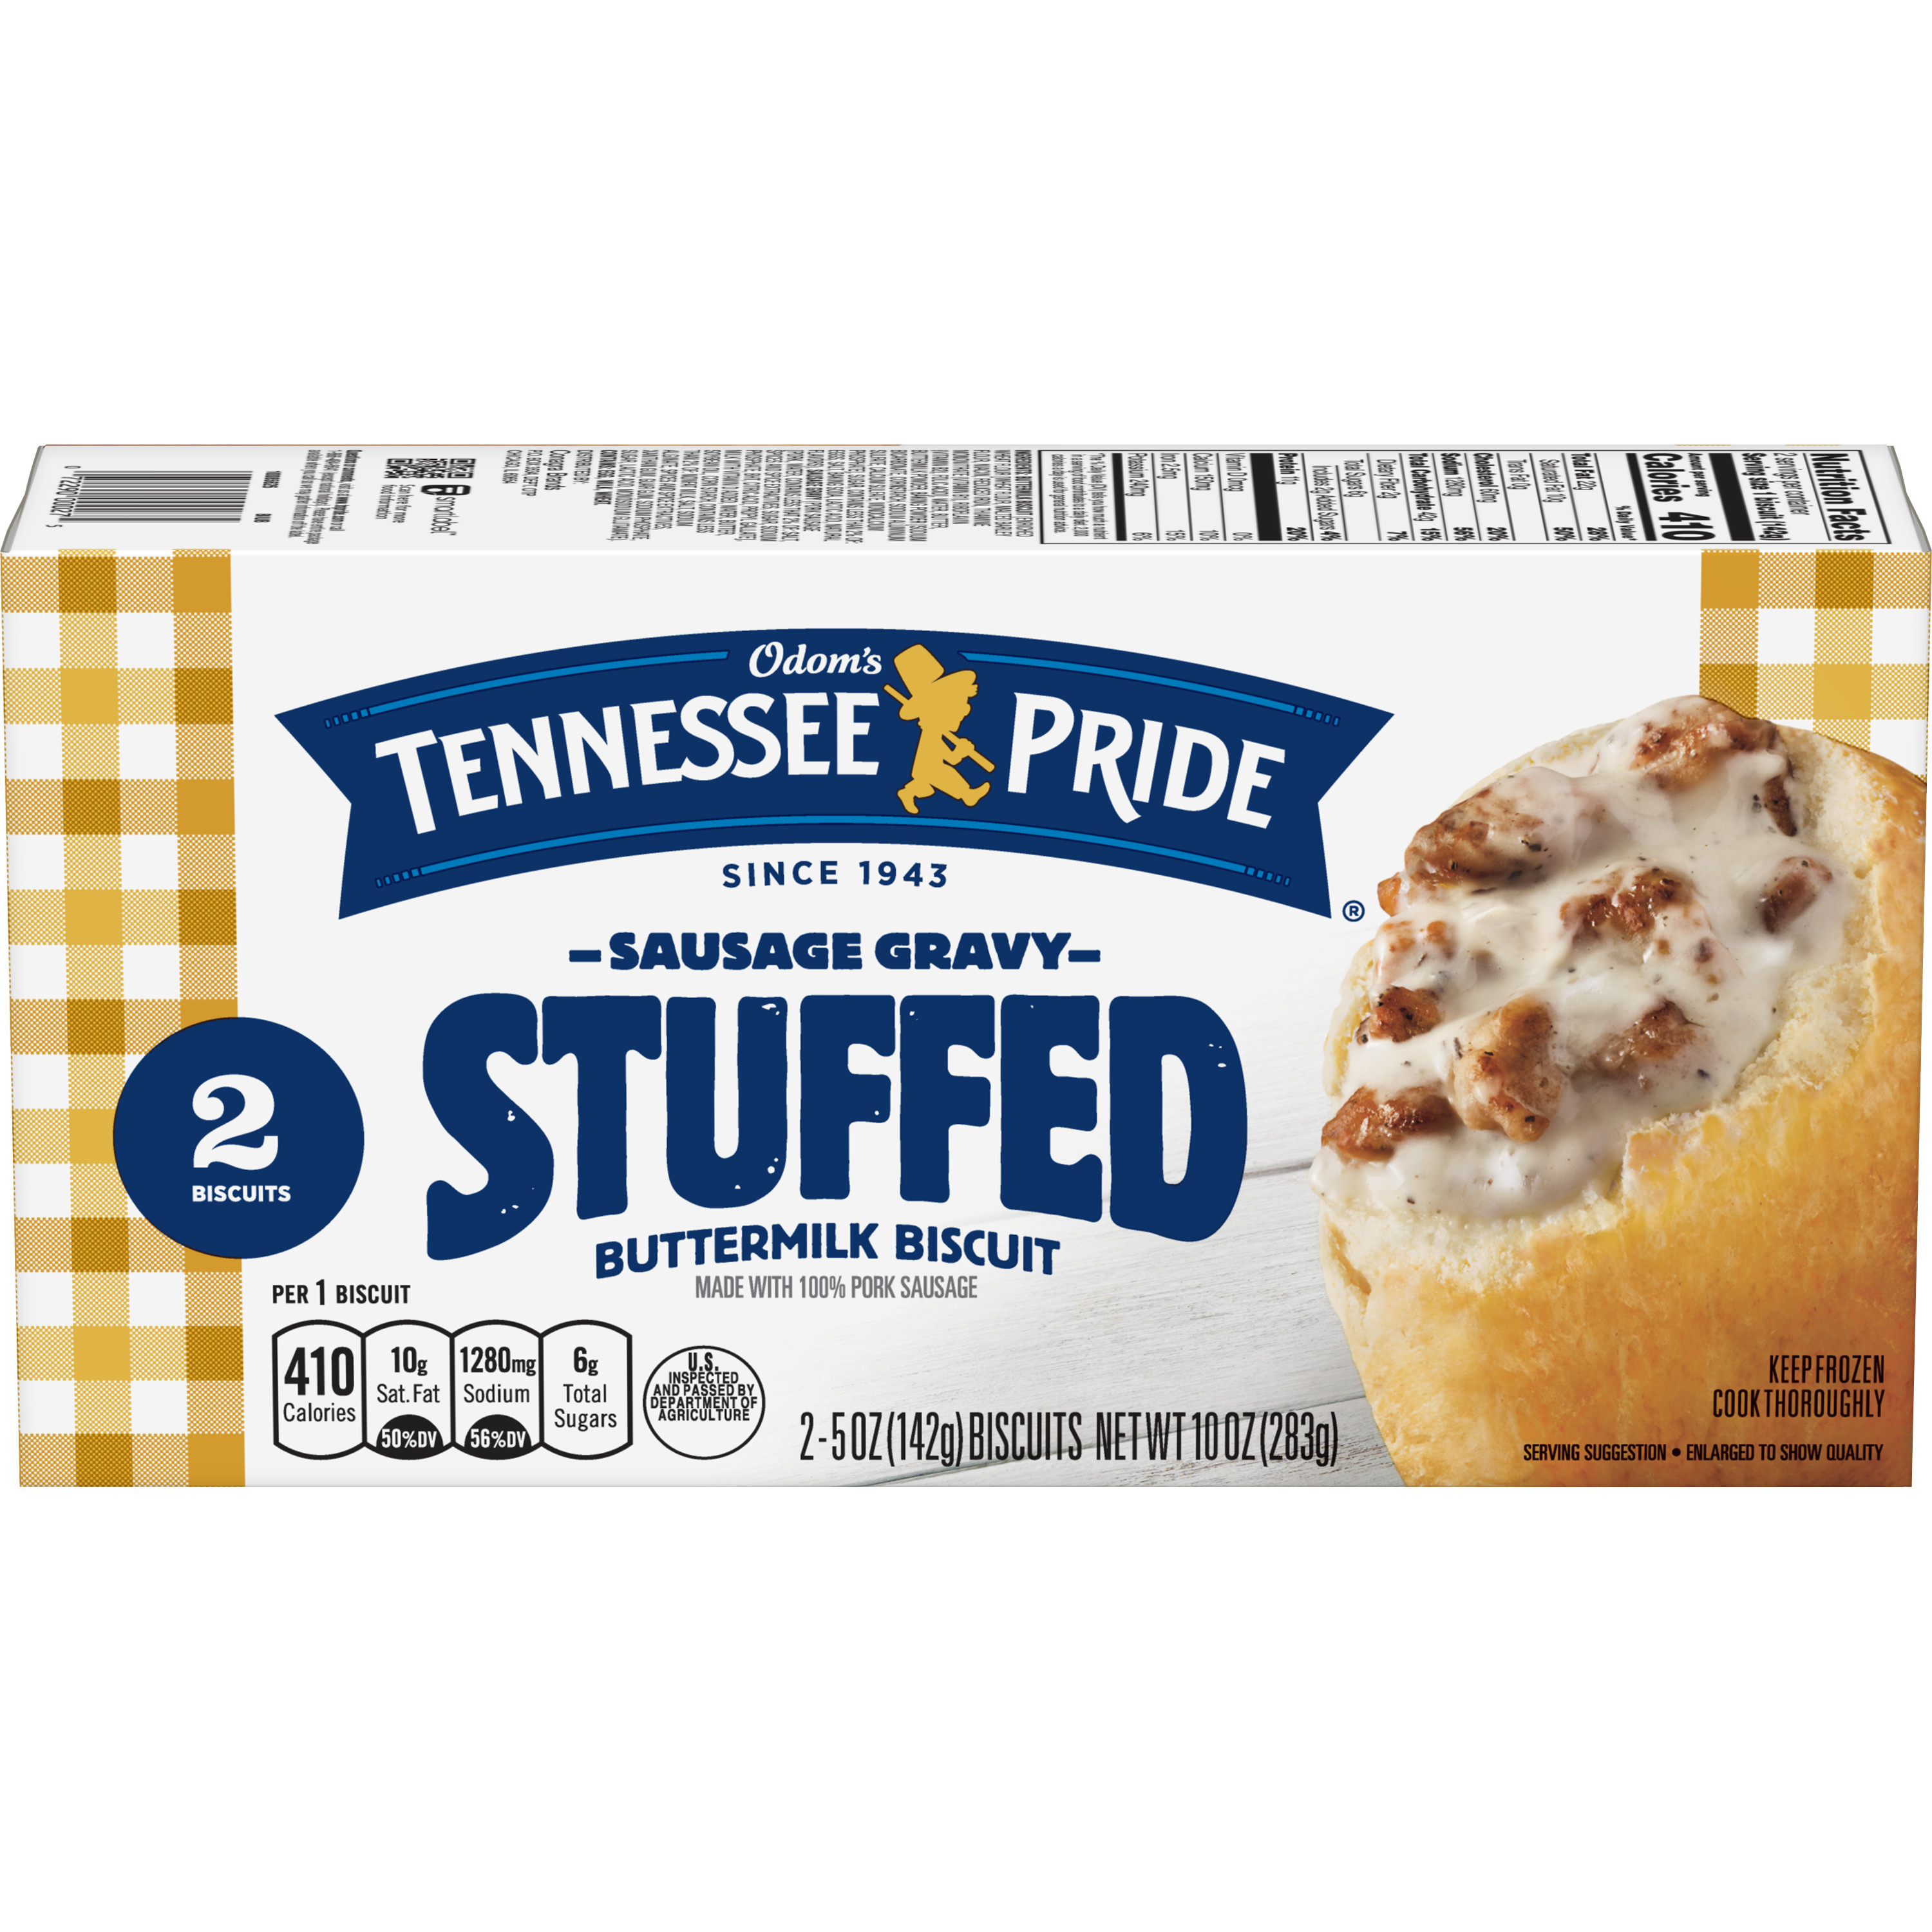 Odom's Tennessee Pride Sausage & Gravy Stuffed Biscuits, 10 Ounce (2-Count Package)